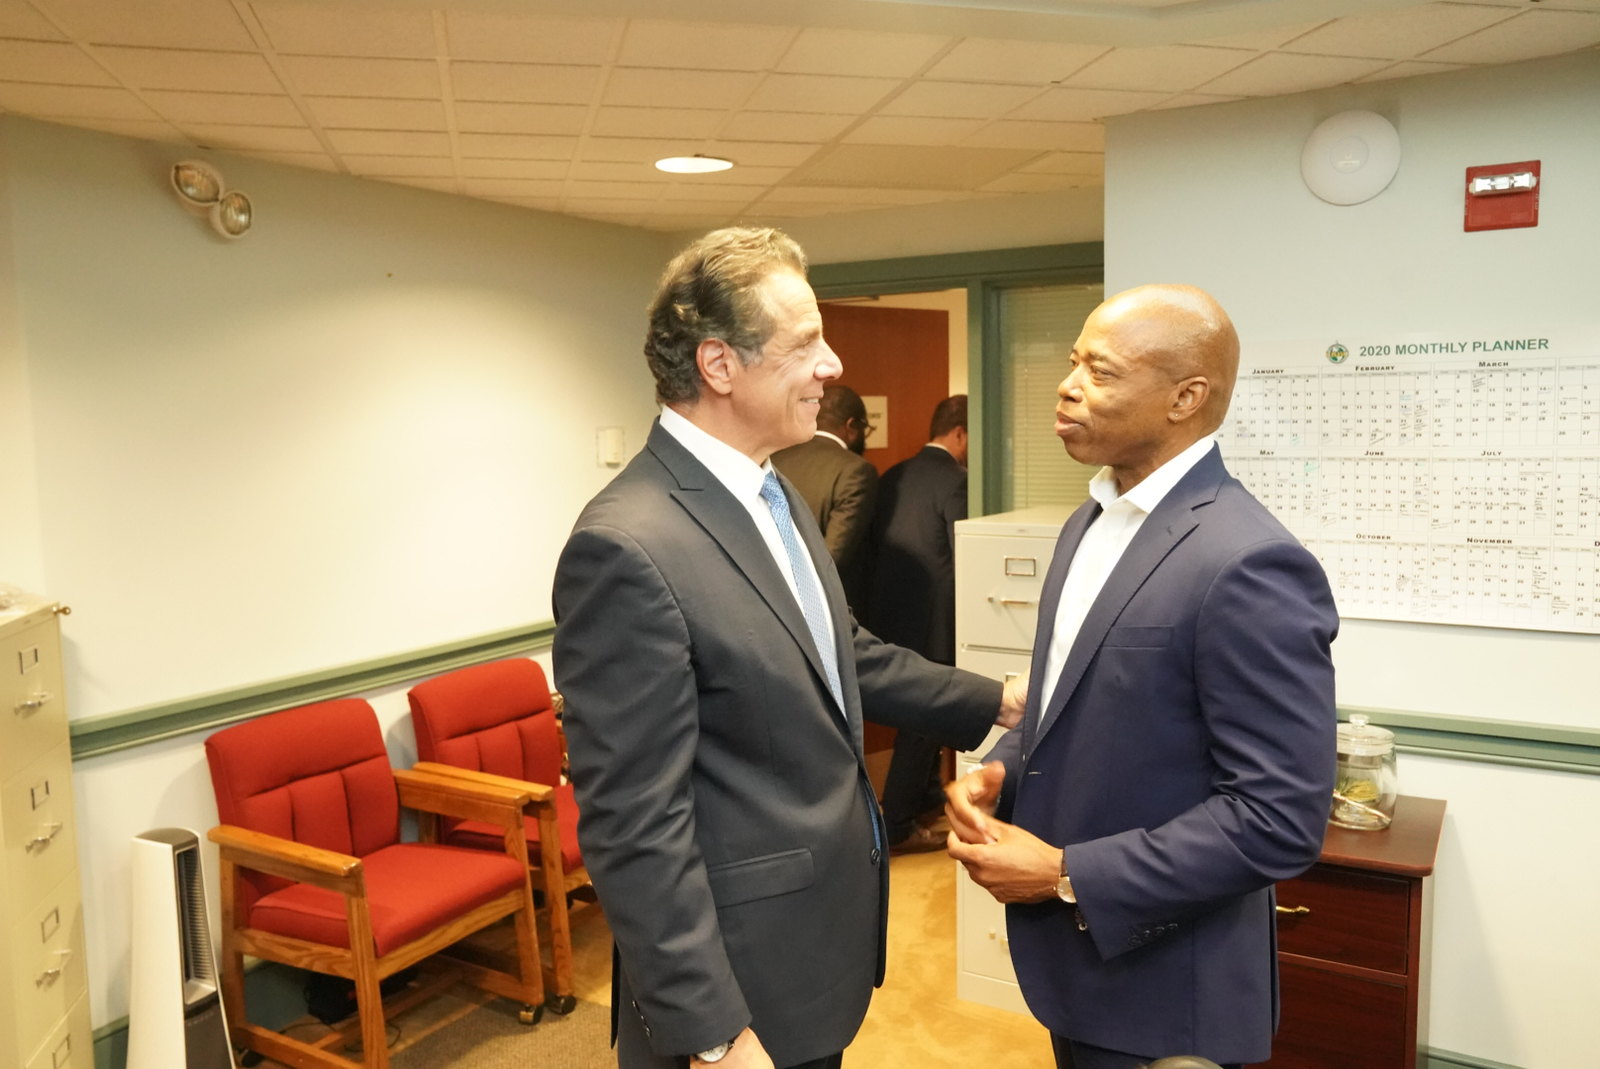 Governor Cuomo and Eric Adams smile at each other